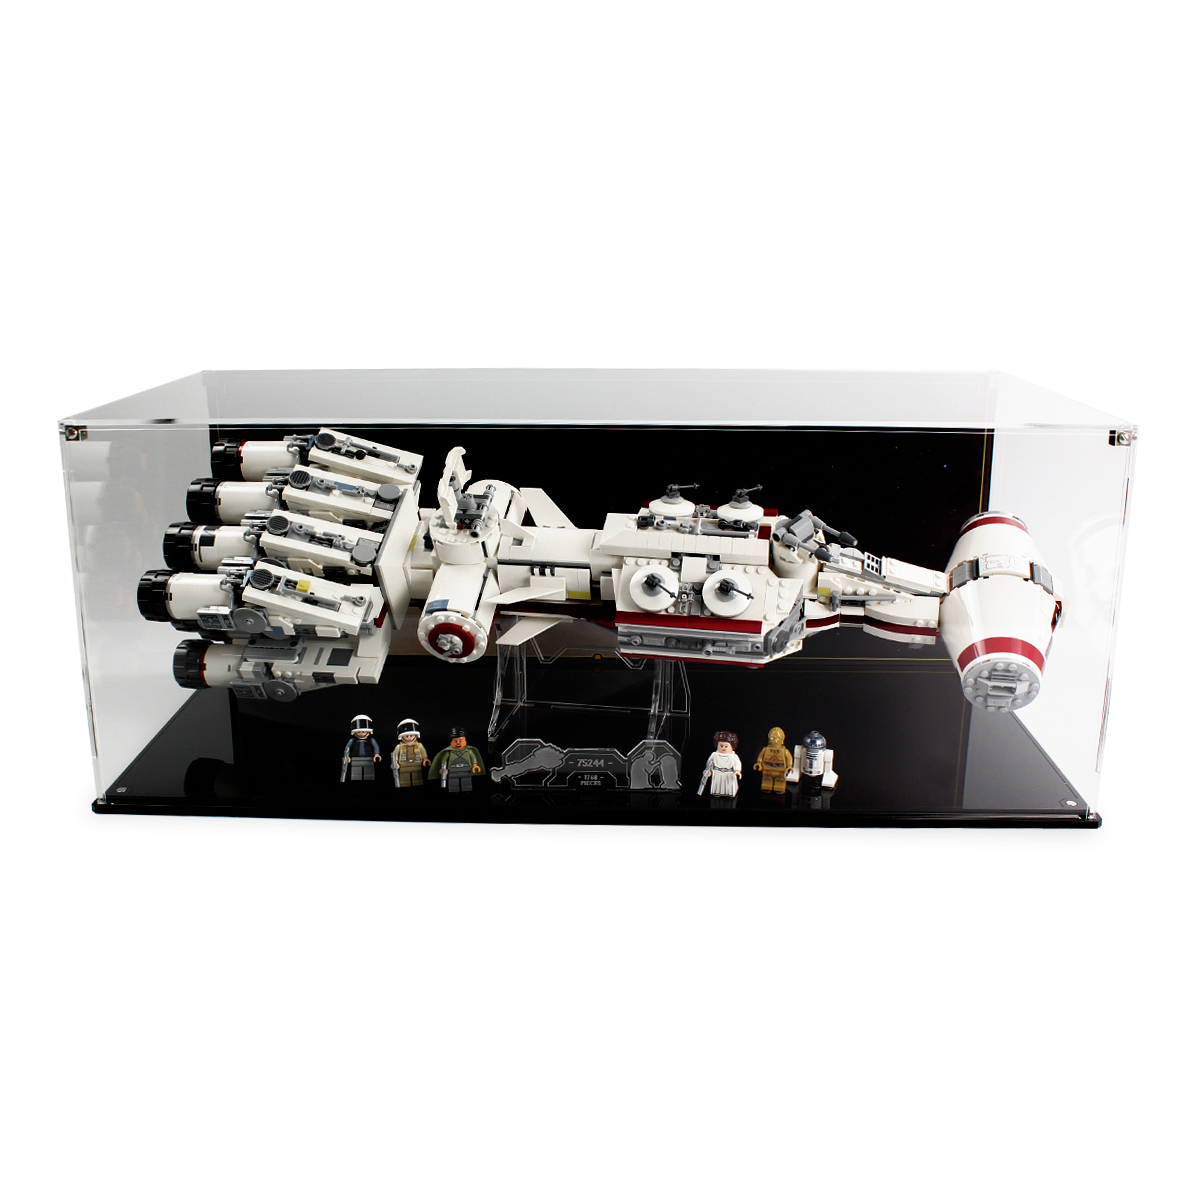 Rebel Transport Fighters stands E-077 Star Wars X-Wing case for Tantive IV